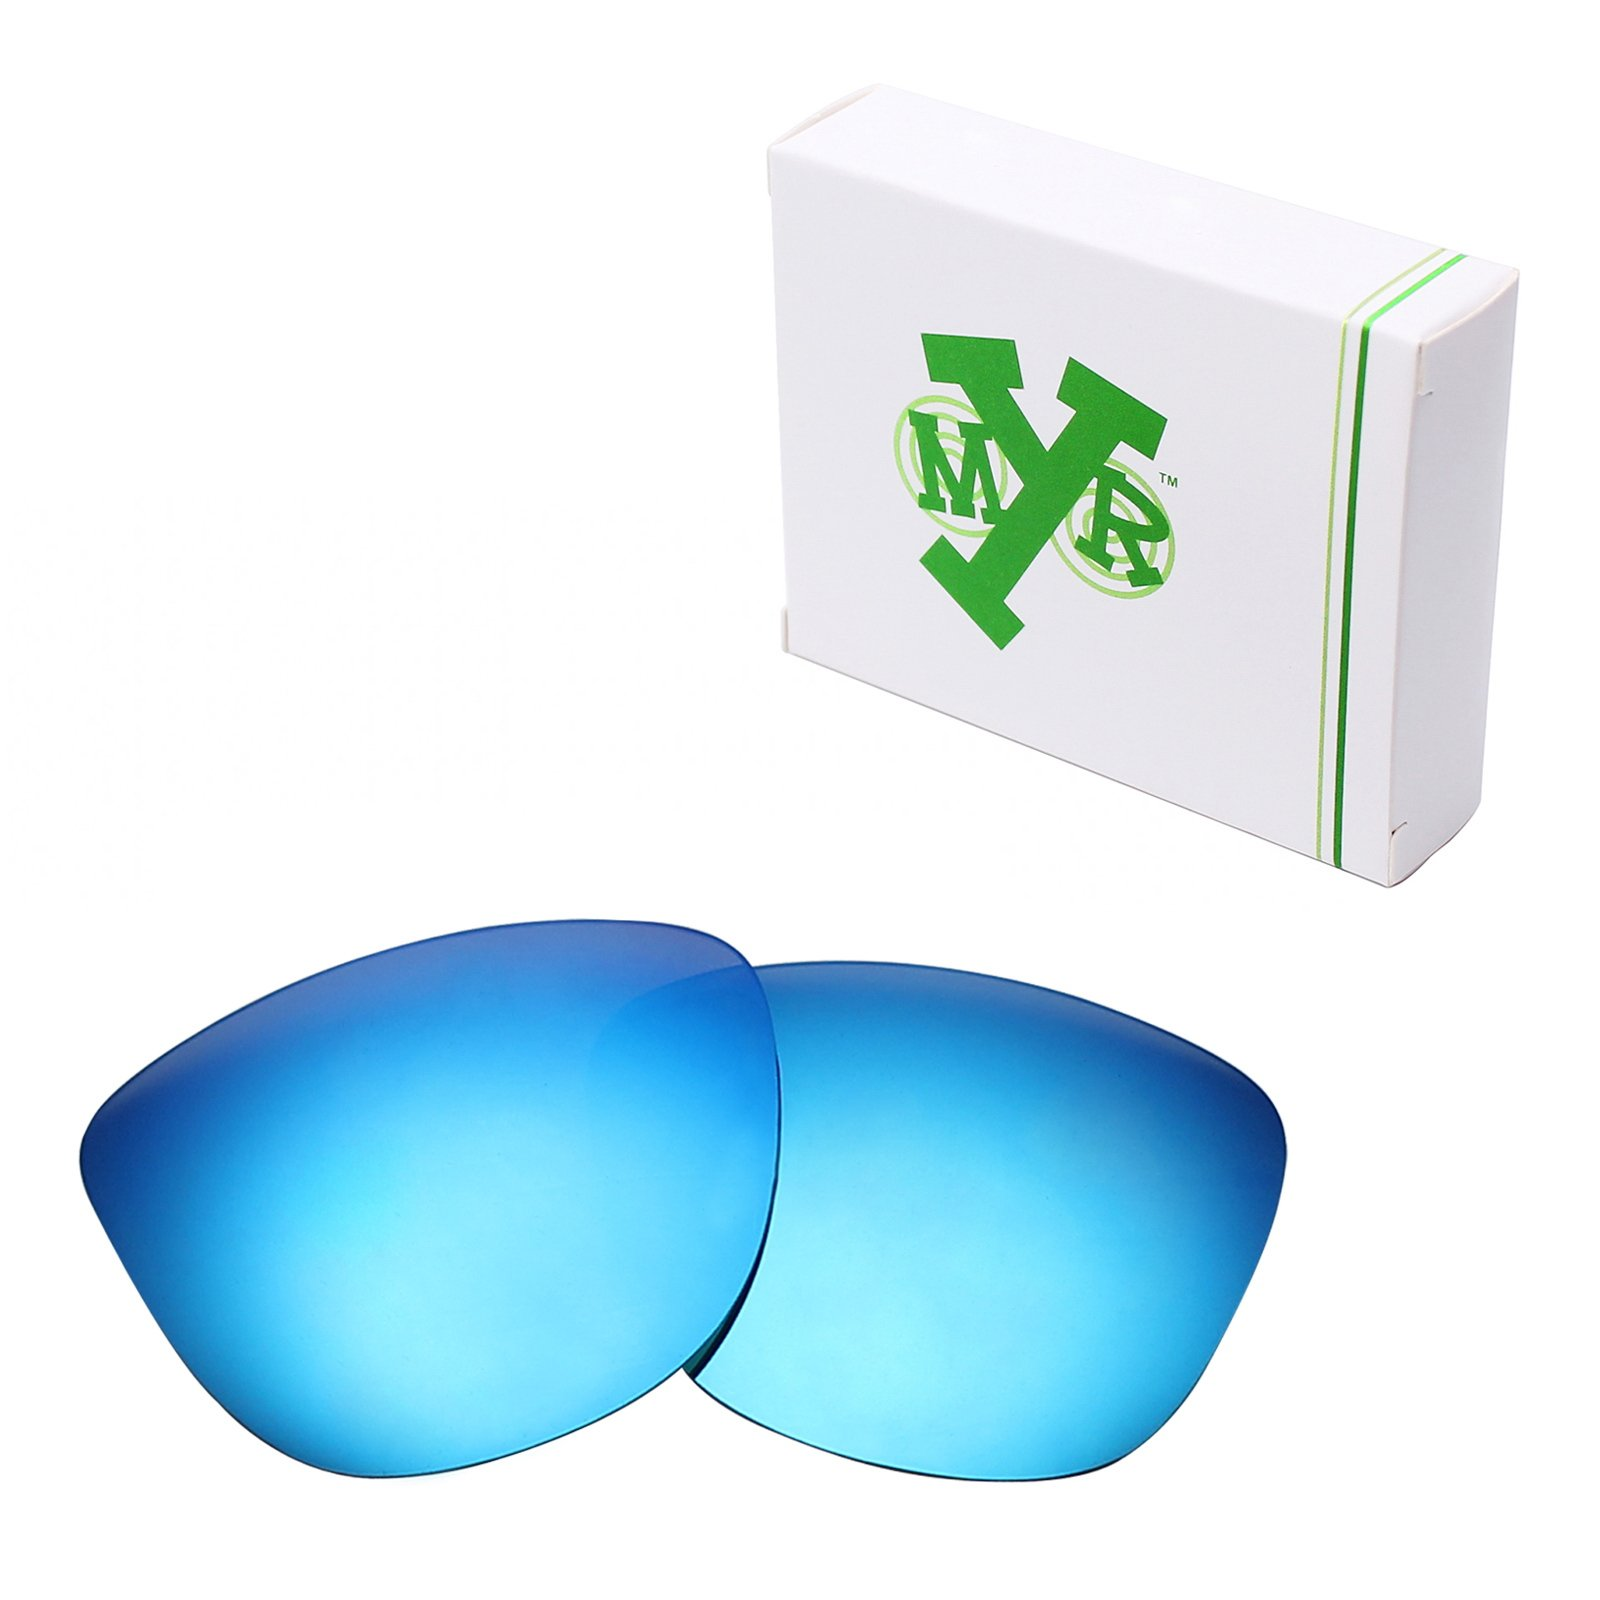 Mryok UV400 Replacement Lenses for Oakley Frogskins - Ice Blue